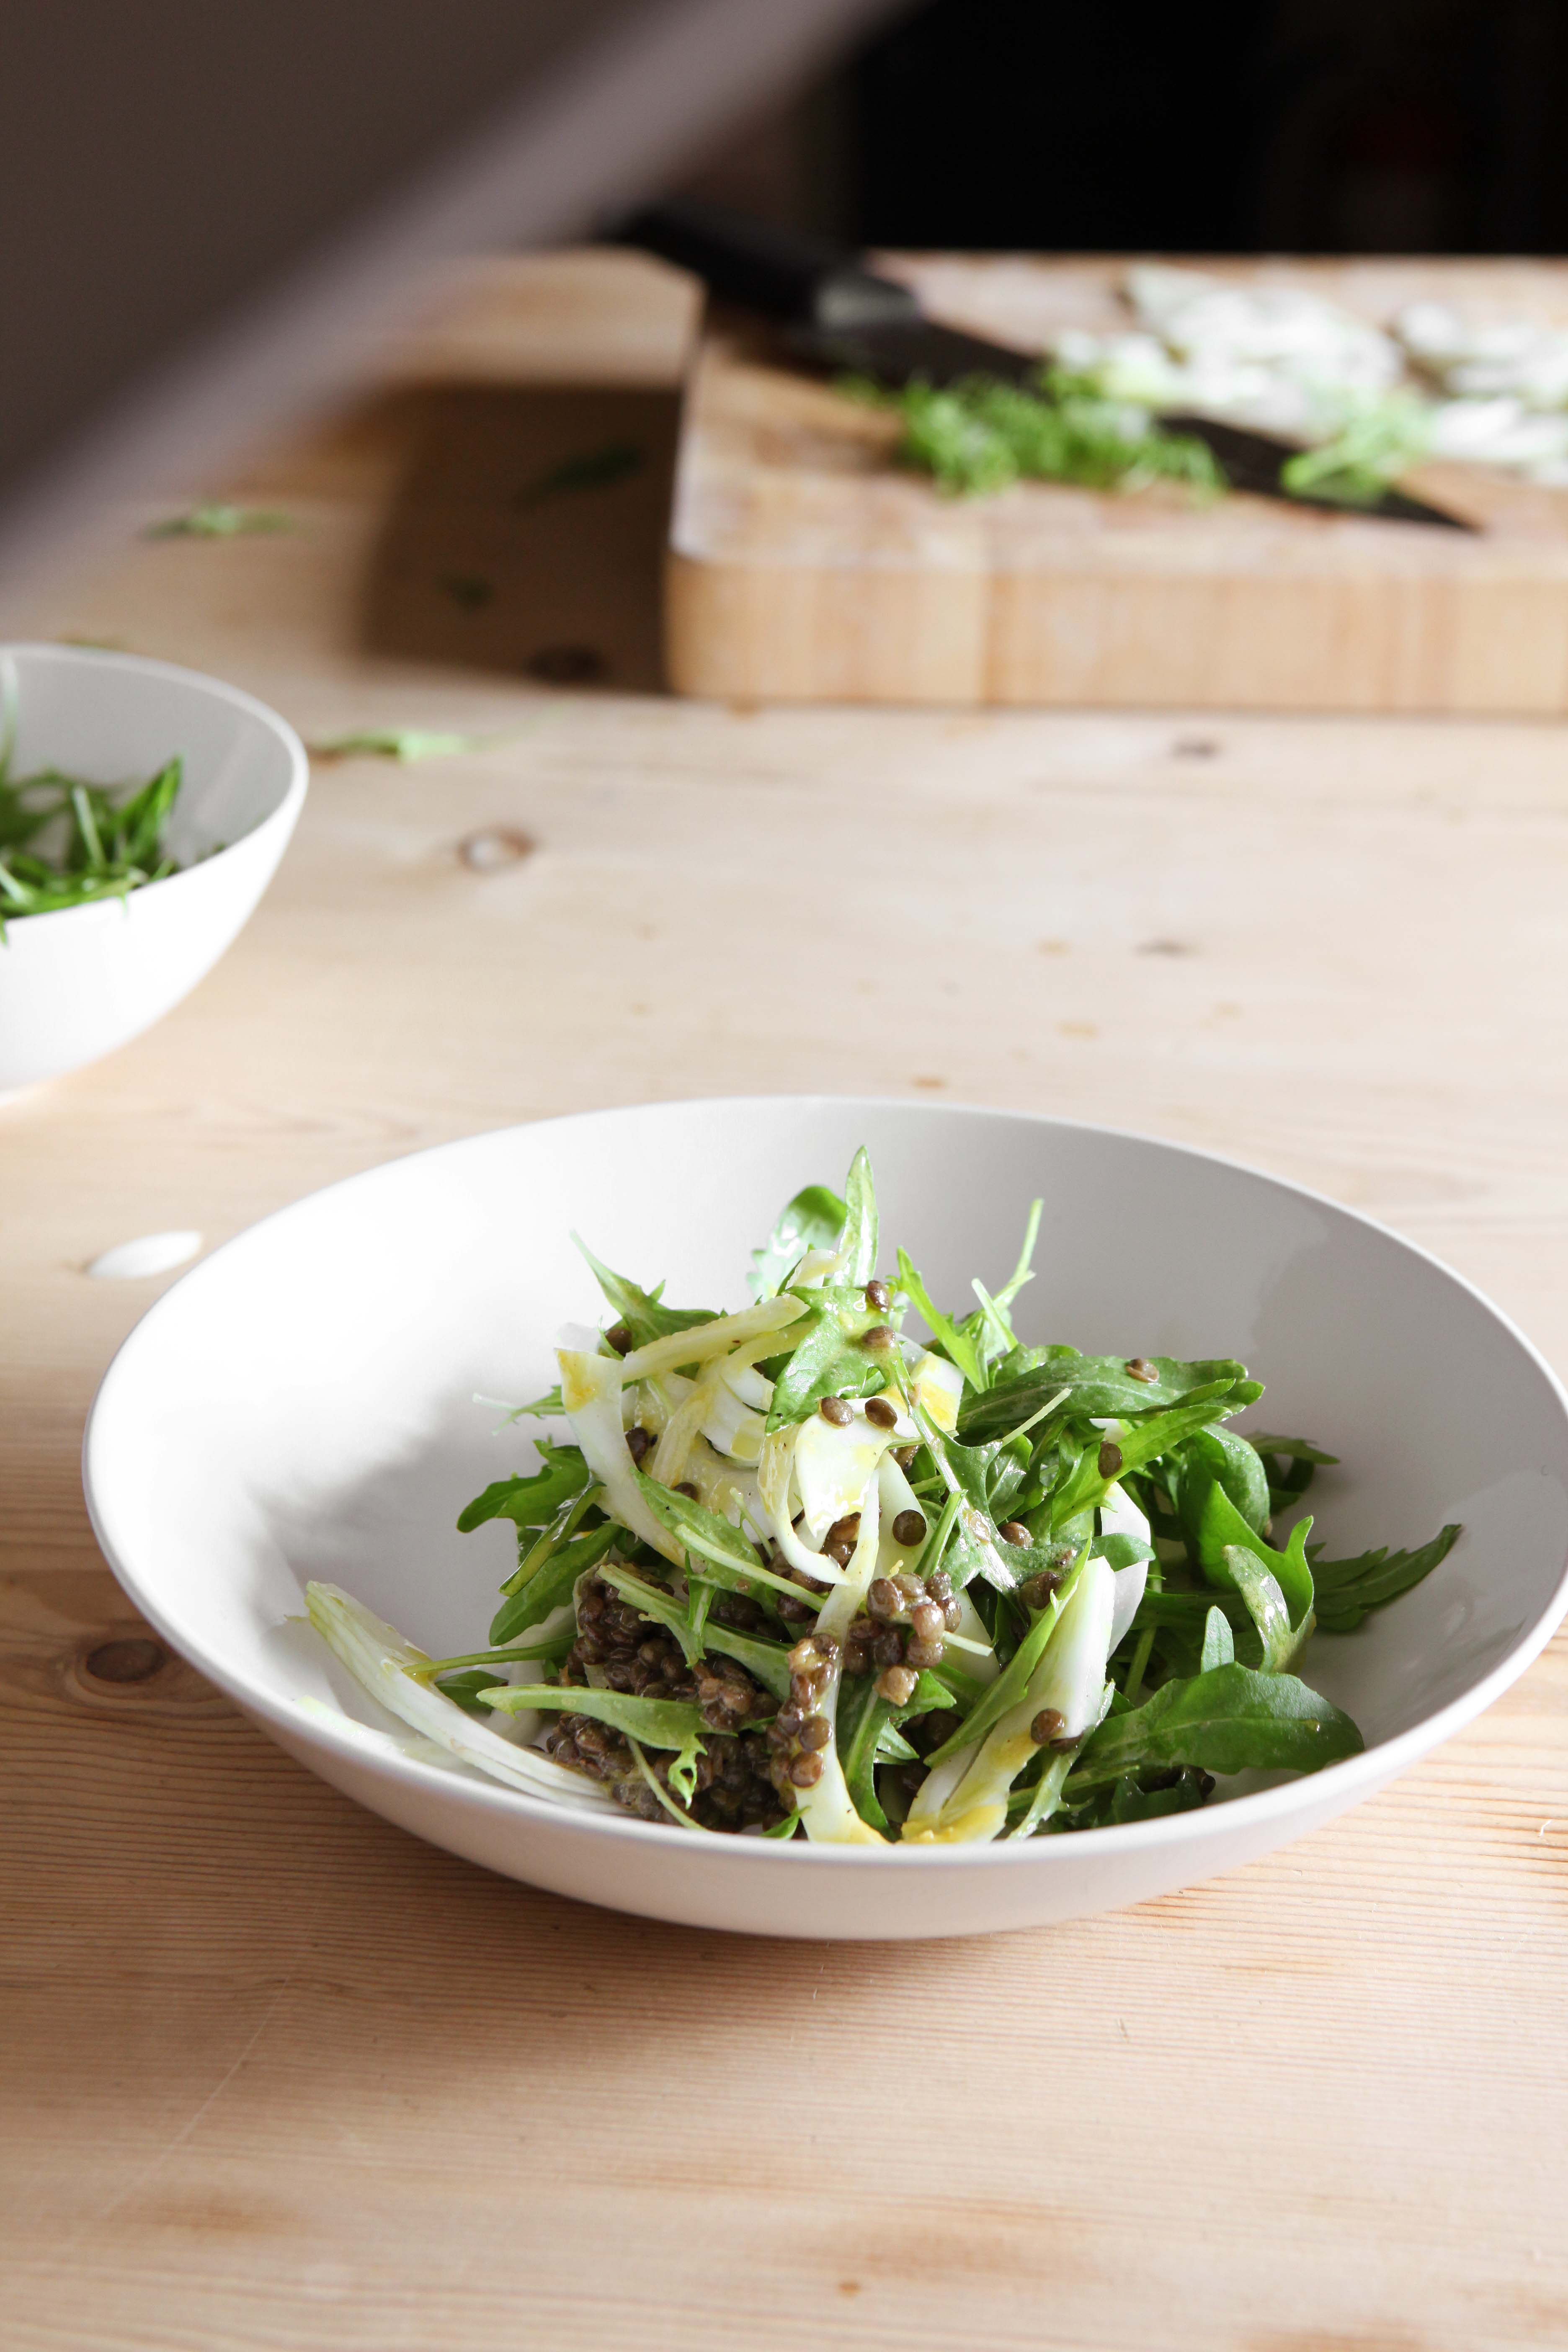 River Cottage's Rocket, fennel and puy lentil salad